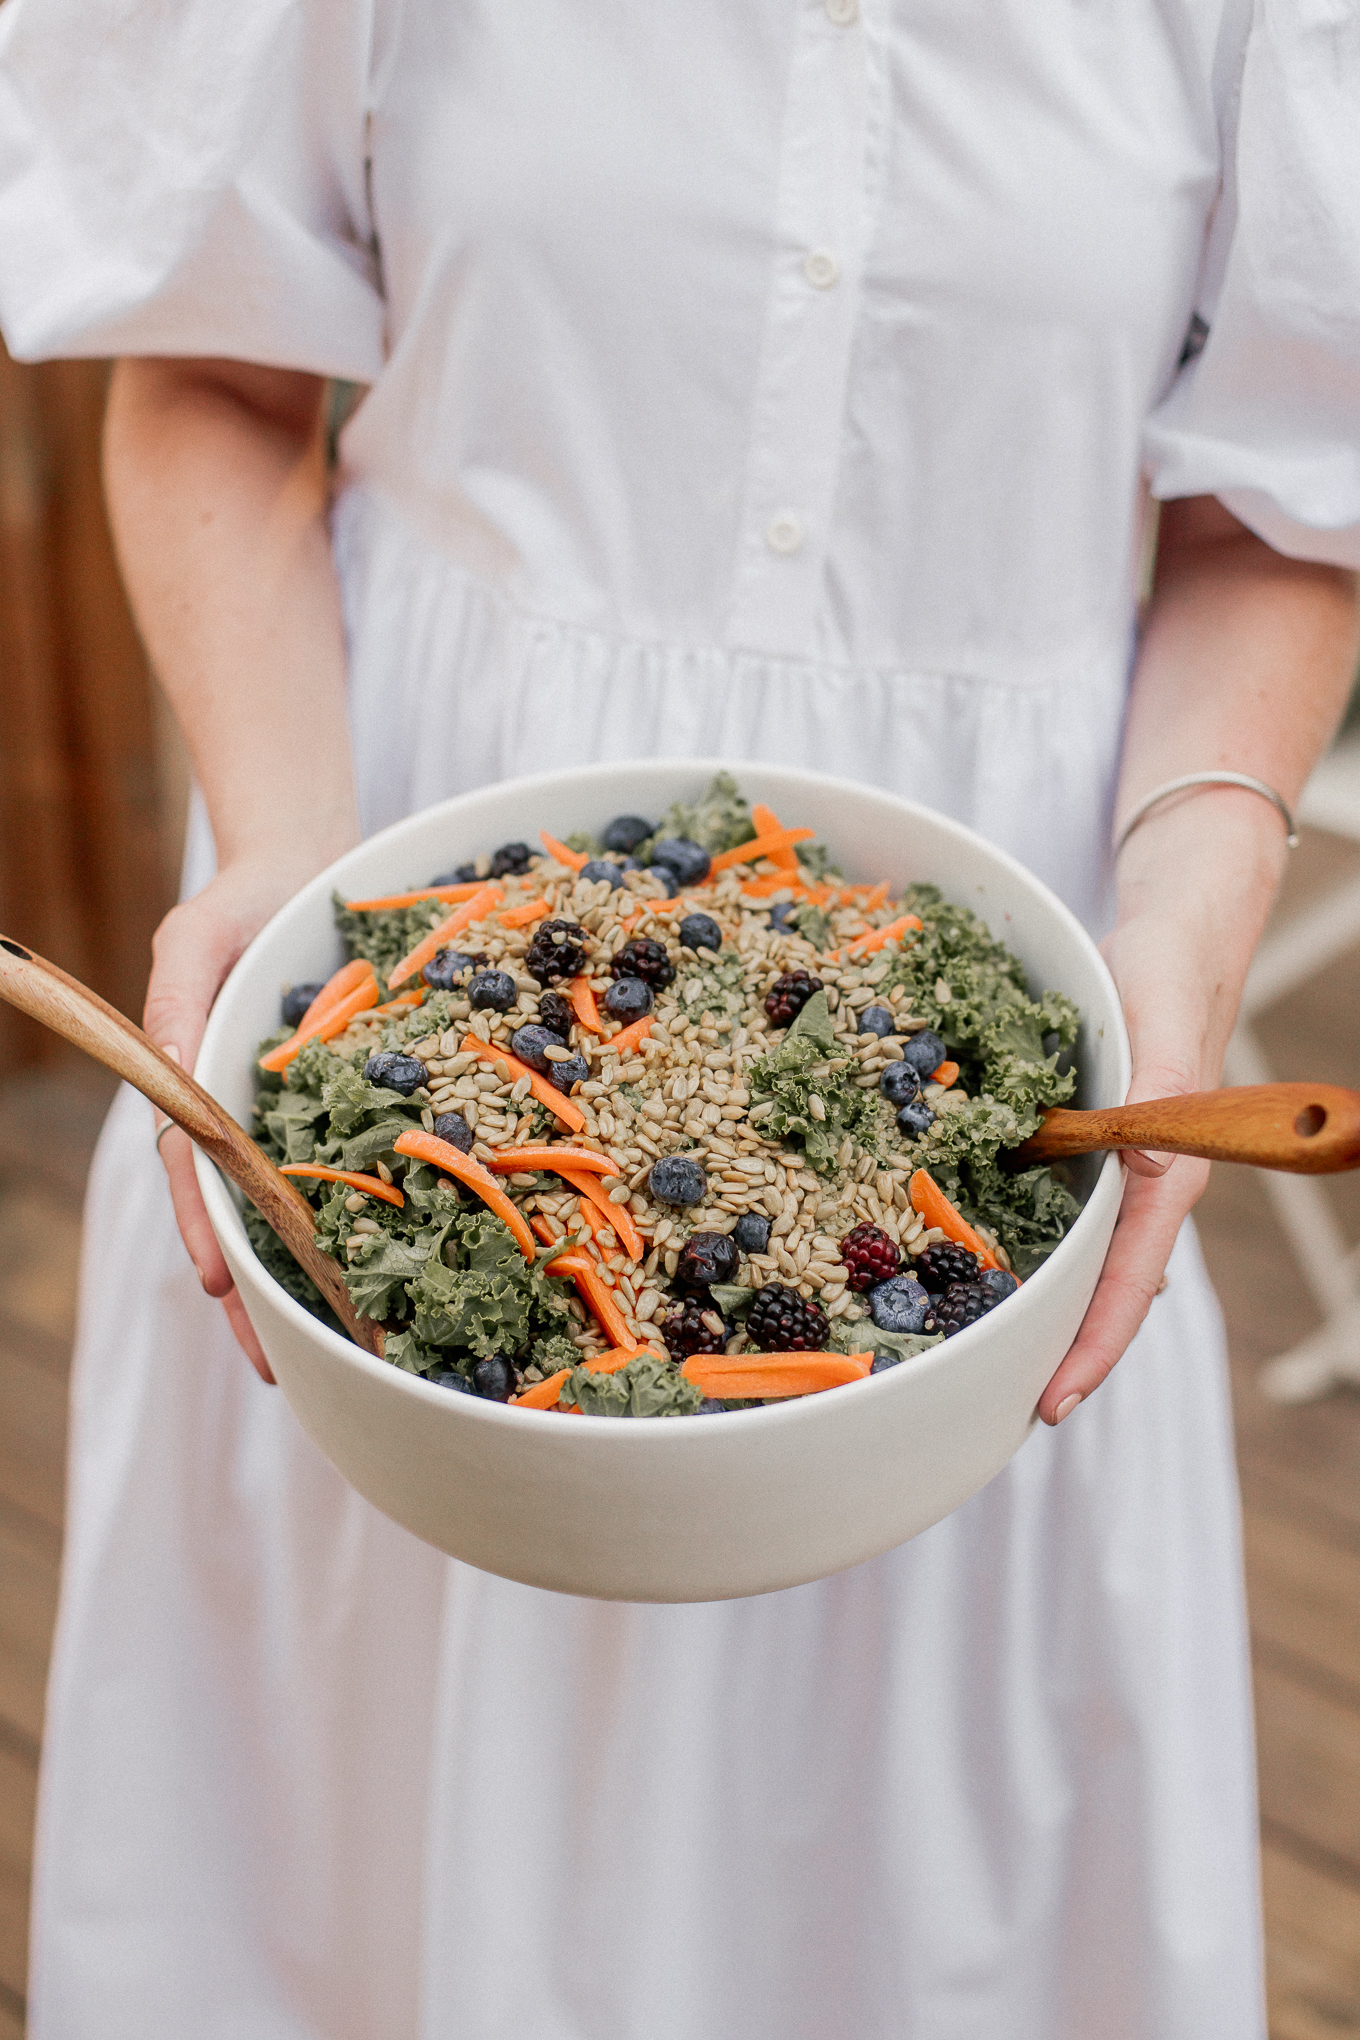 Kale Salad with Quiona, Fresh Fruit, and Vegetables | Farmer's Market Menu | Louella Reese